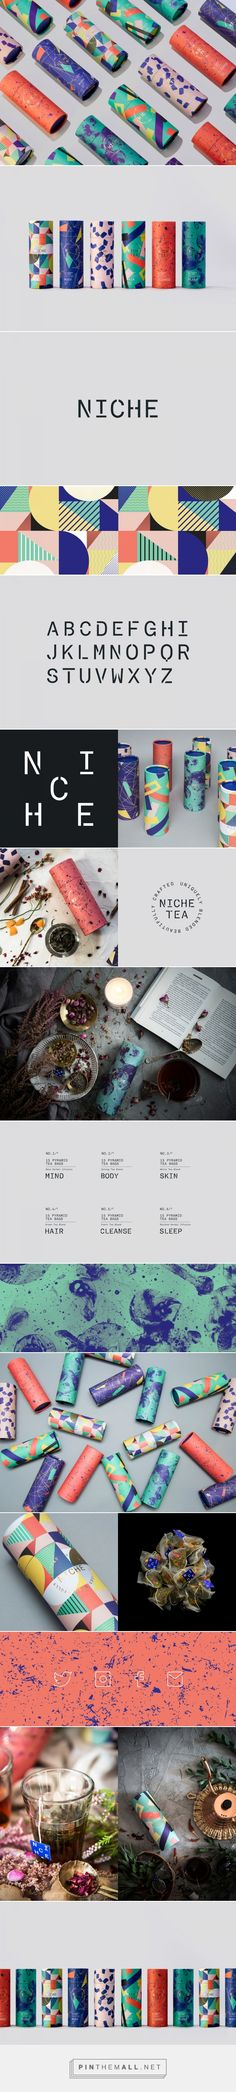 NICHE Tea on Behance - created via https://pinthemall.net